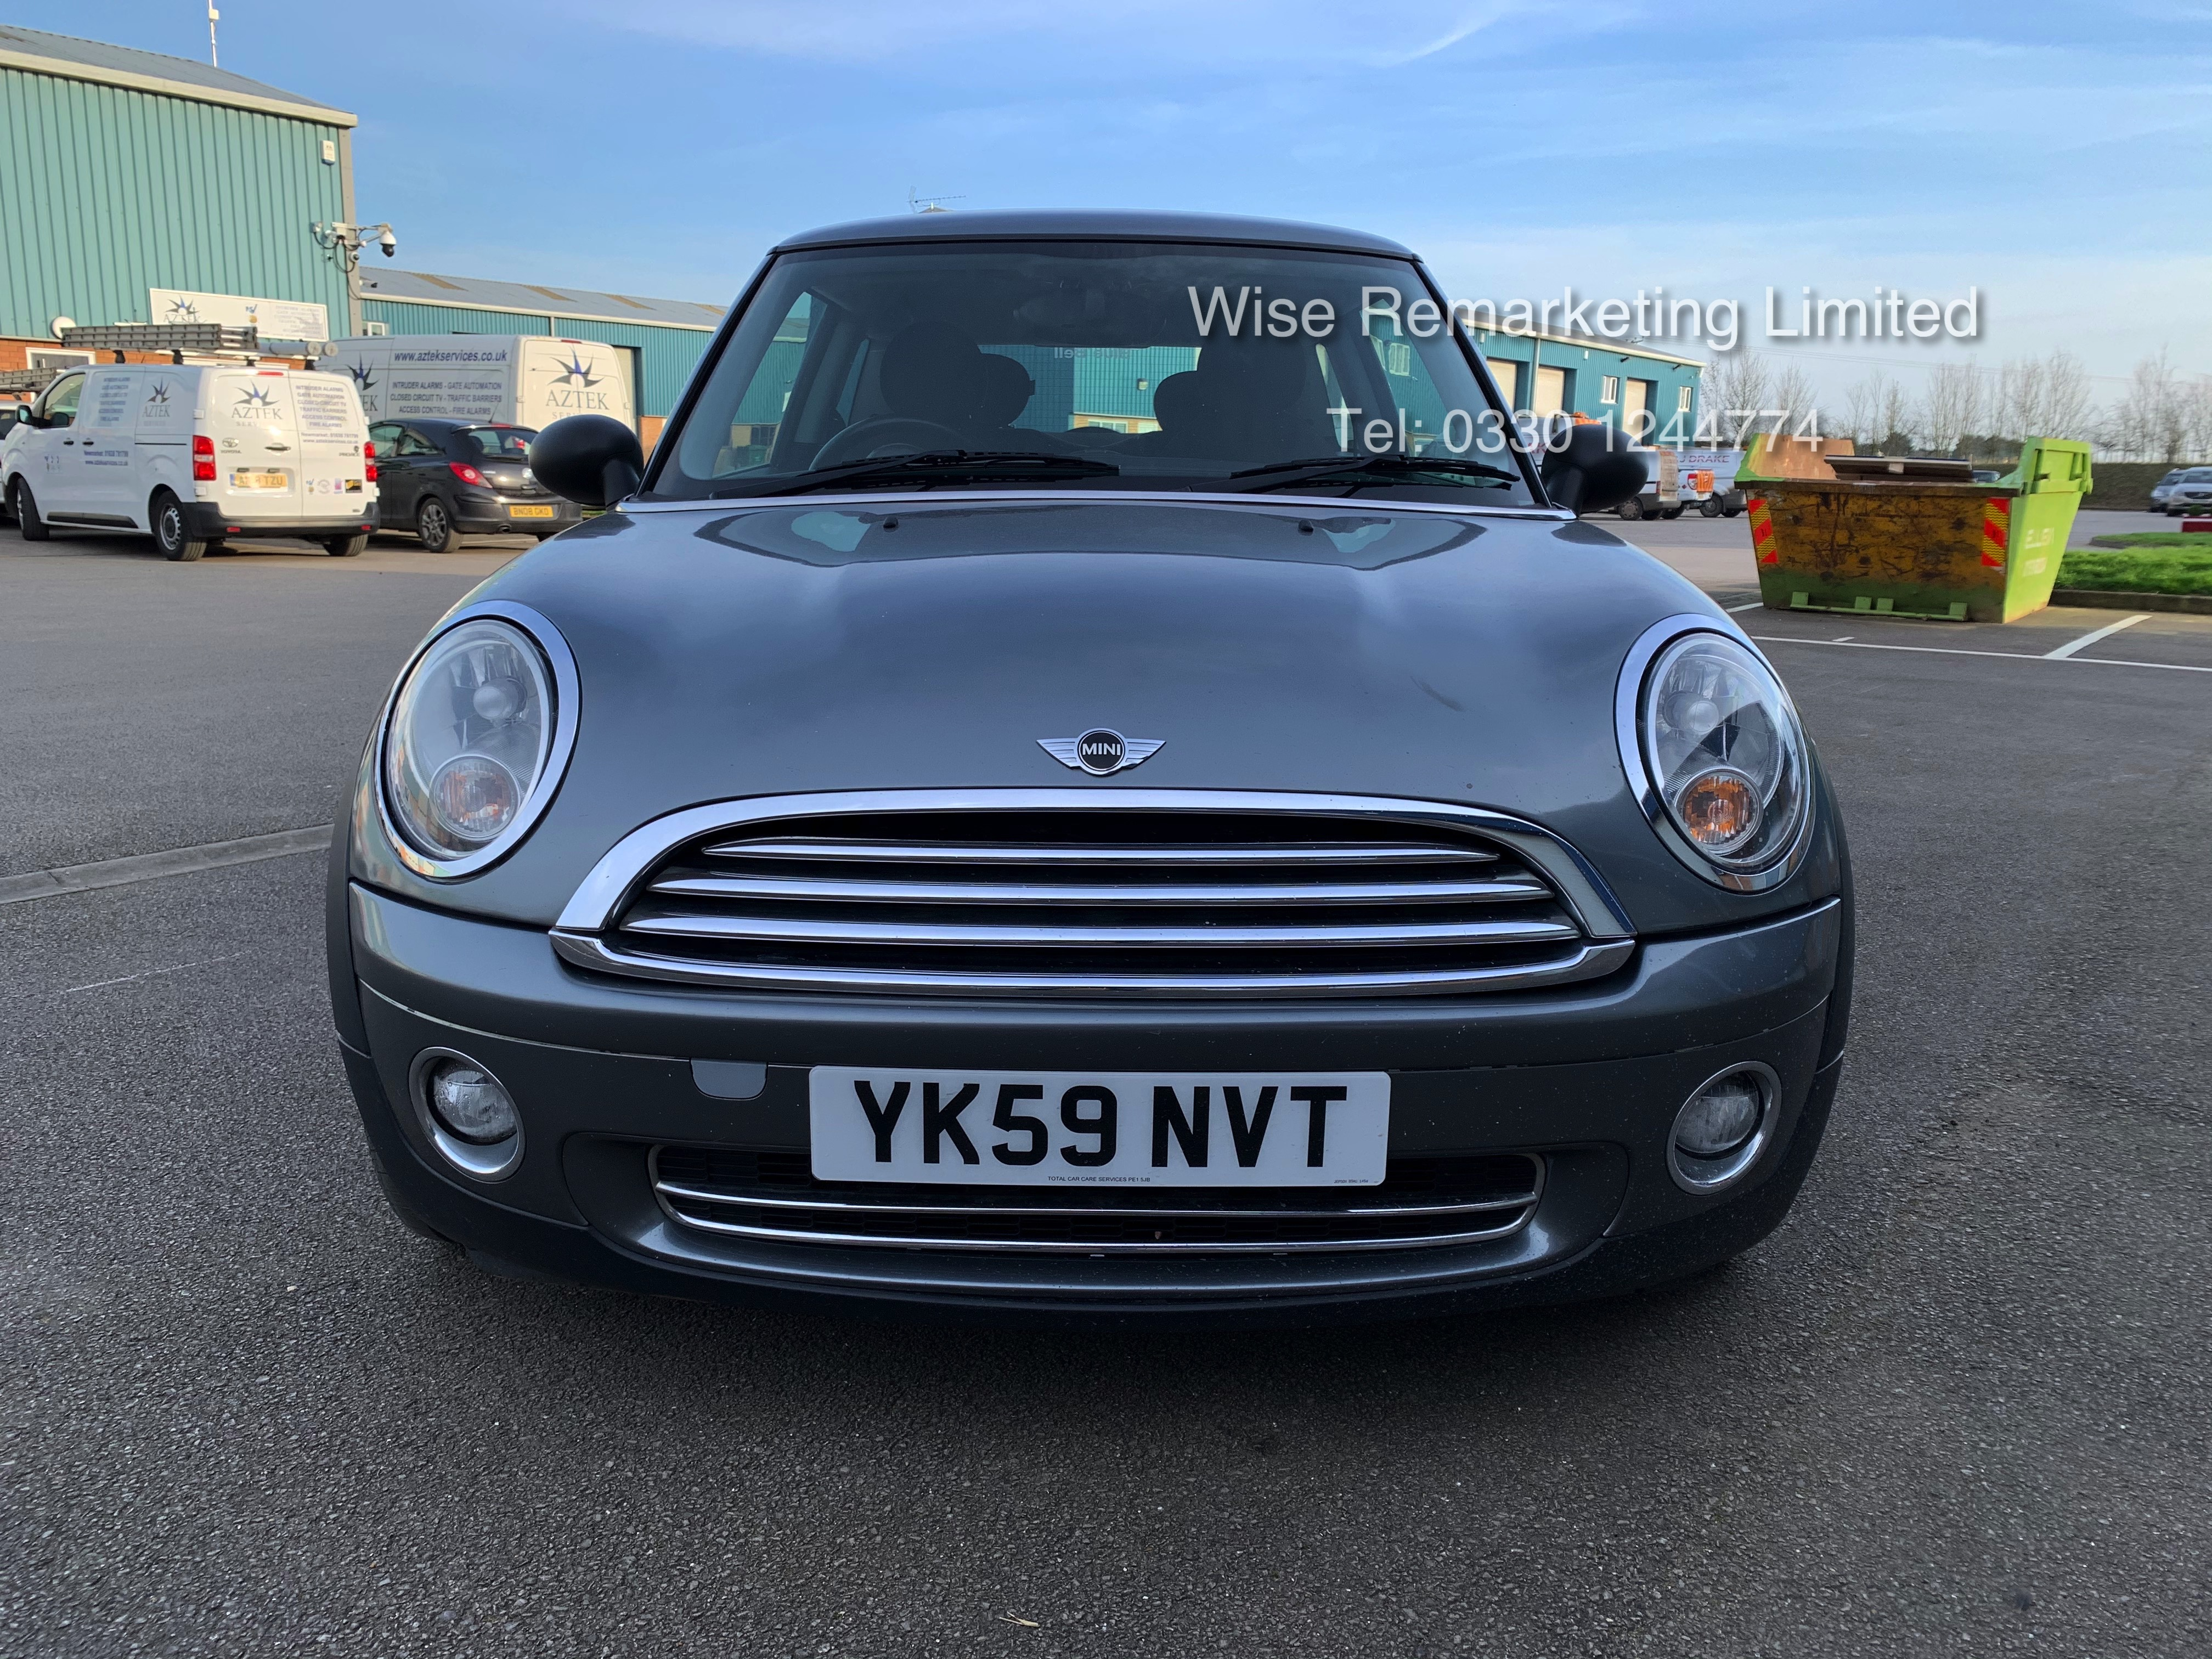 (RESERVE MET) Mini One Graphite 1.4 Petrol - 2010 Model - Service History - 6 Speed - Air Con - - Image 4 of 19